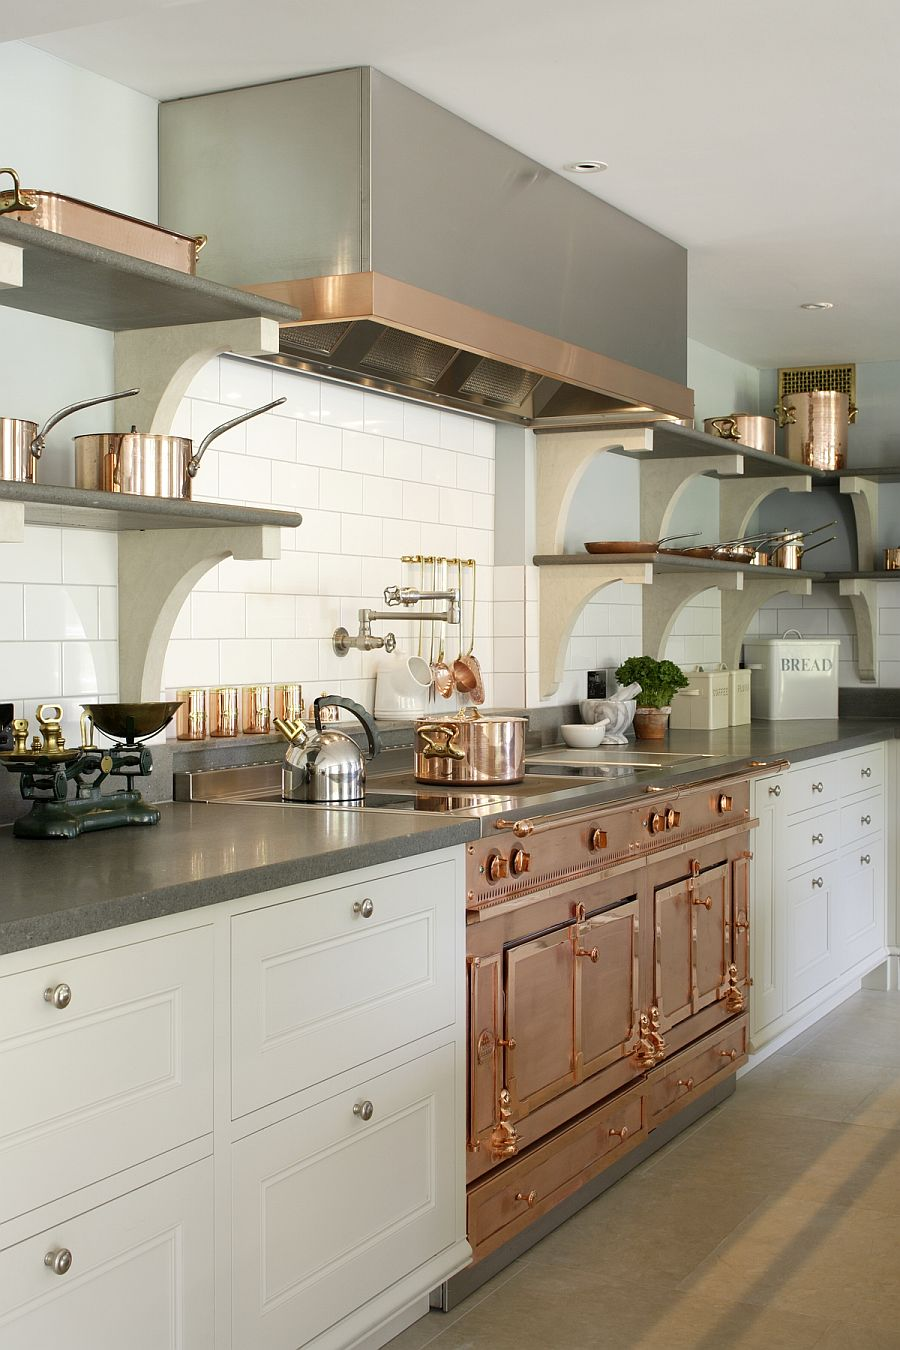 Copper and stainless steel utensils add metallic glint to the Edwardian kitchen